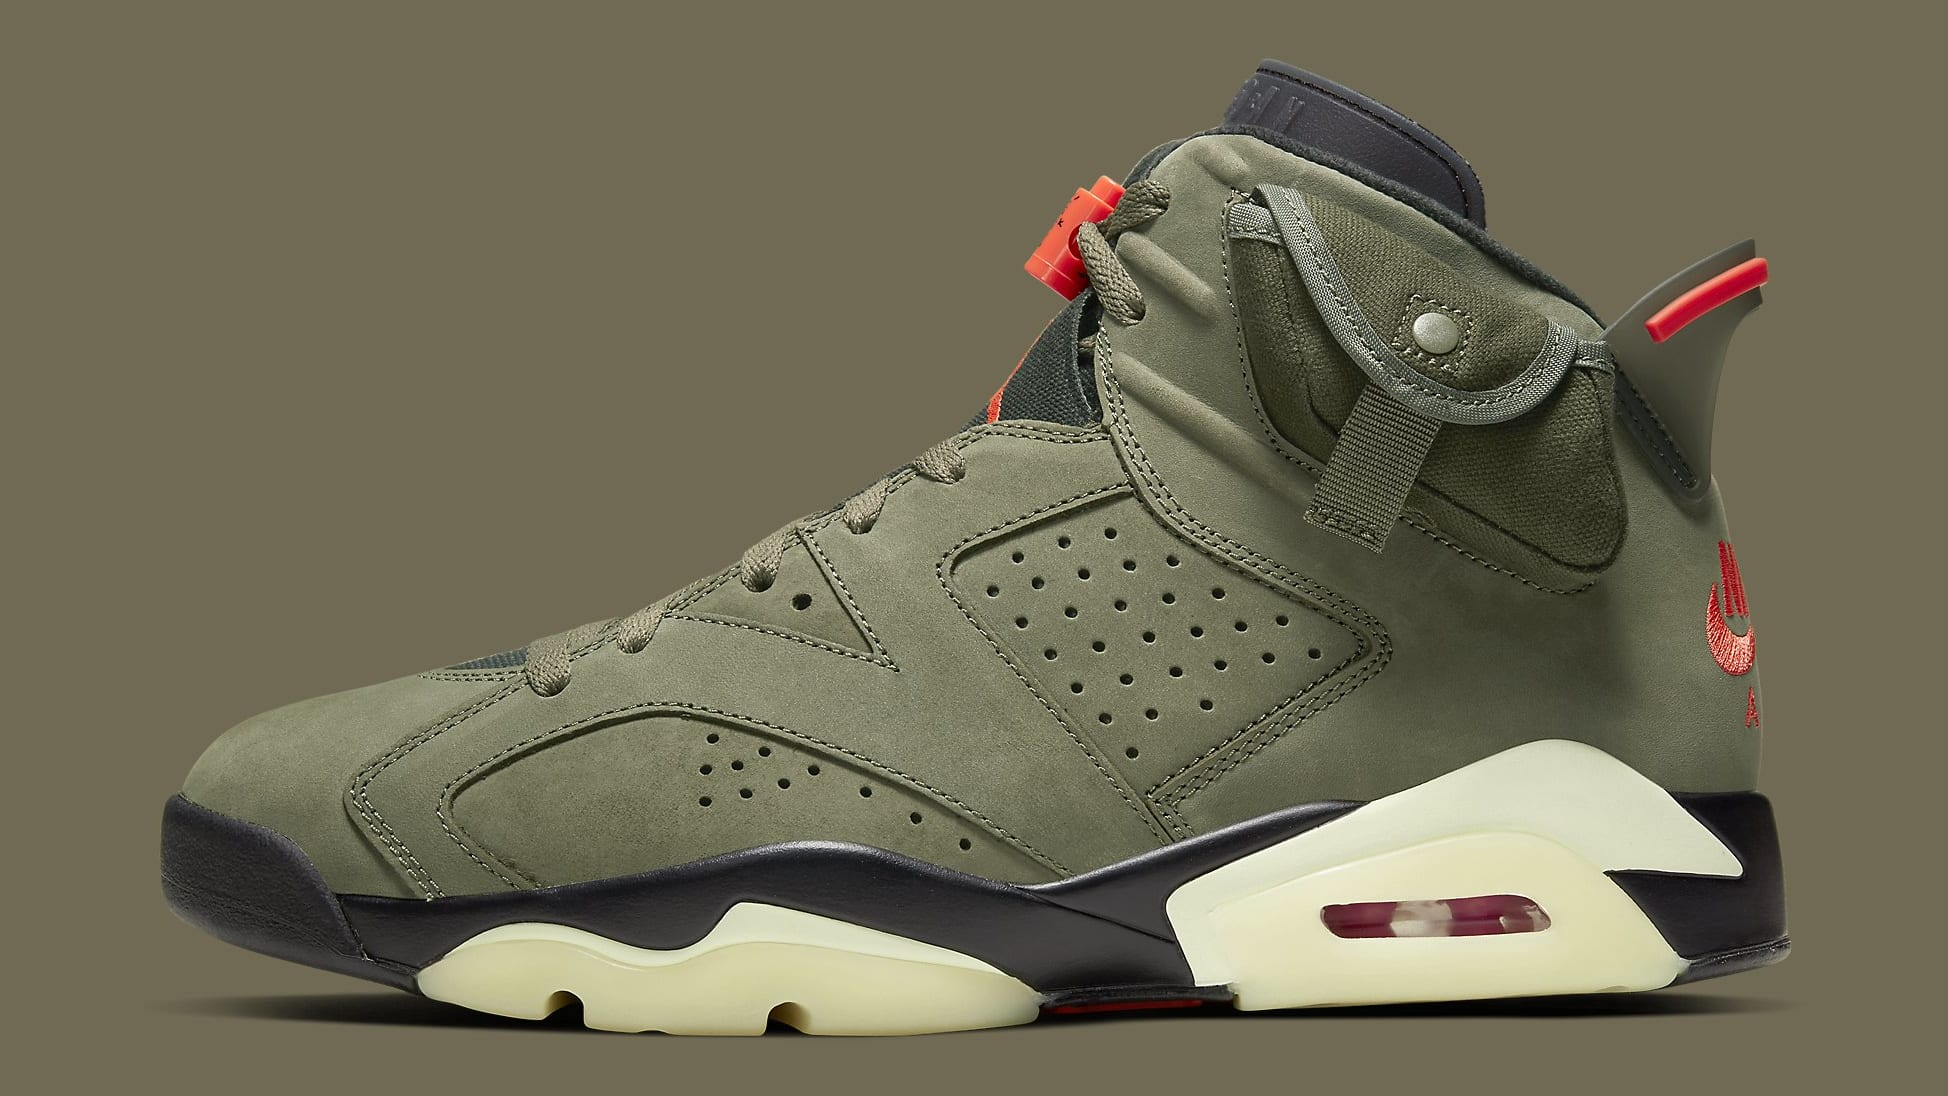 travis-scott-air-jordan-6-vi-retro-cn1084-200-lateral